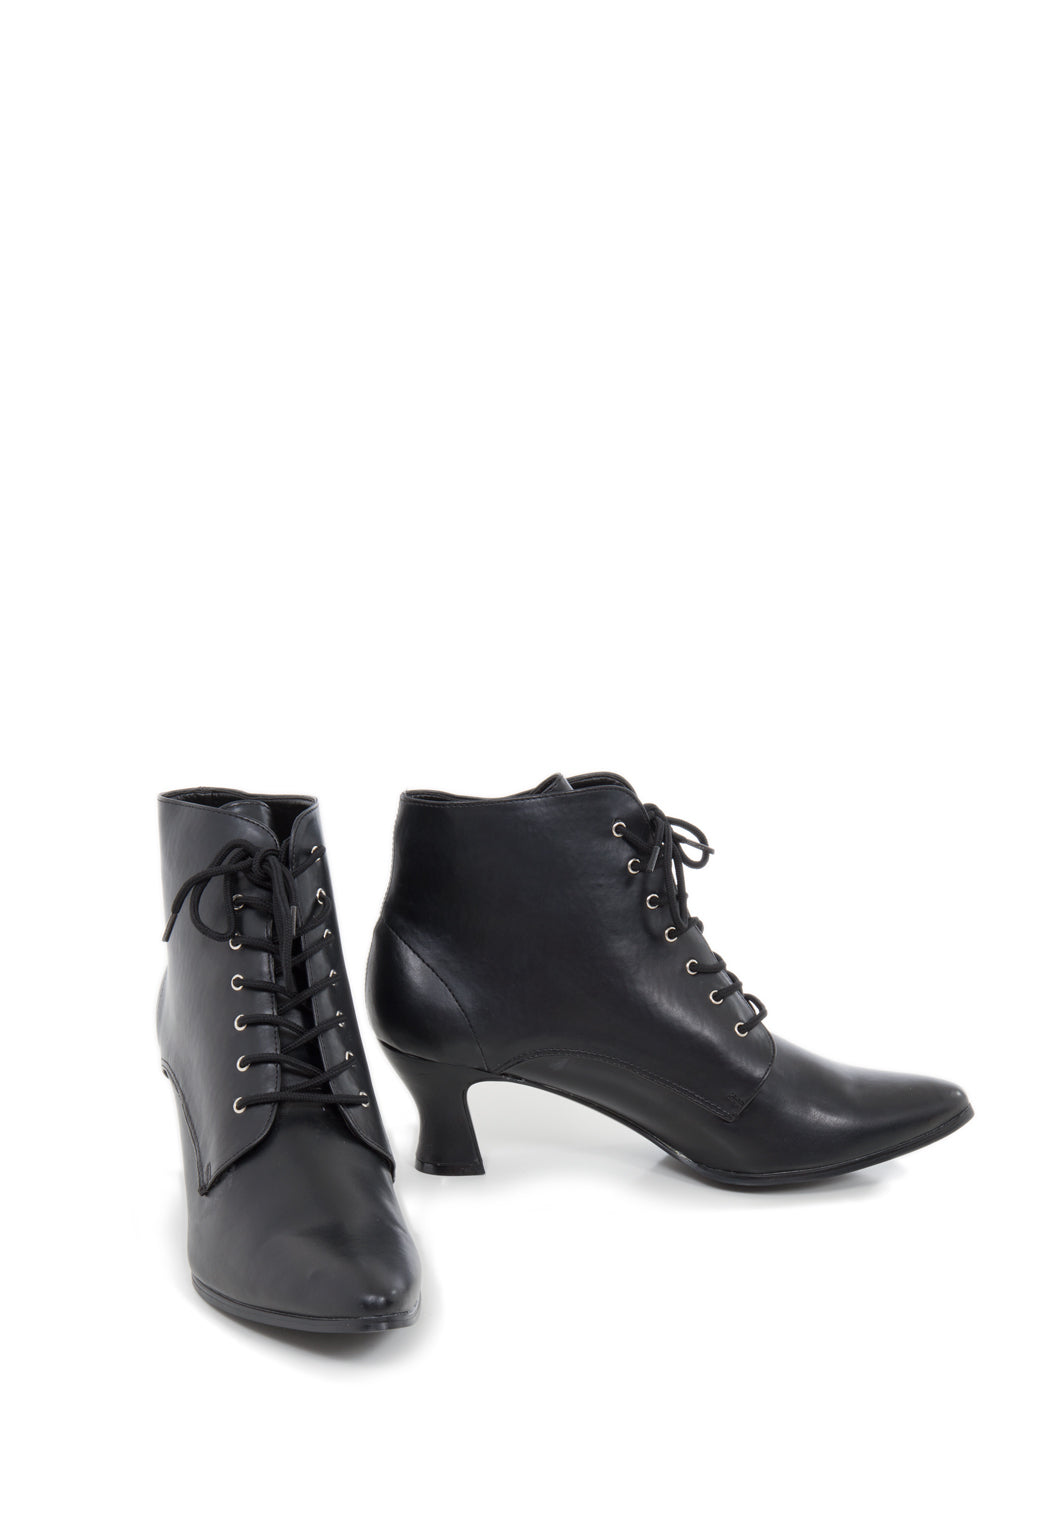 Black Multi-purpose Boots